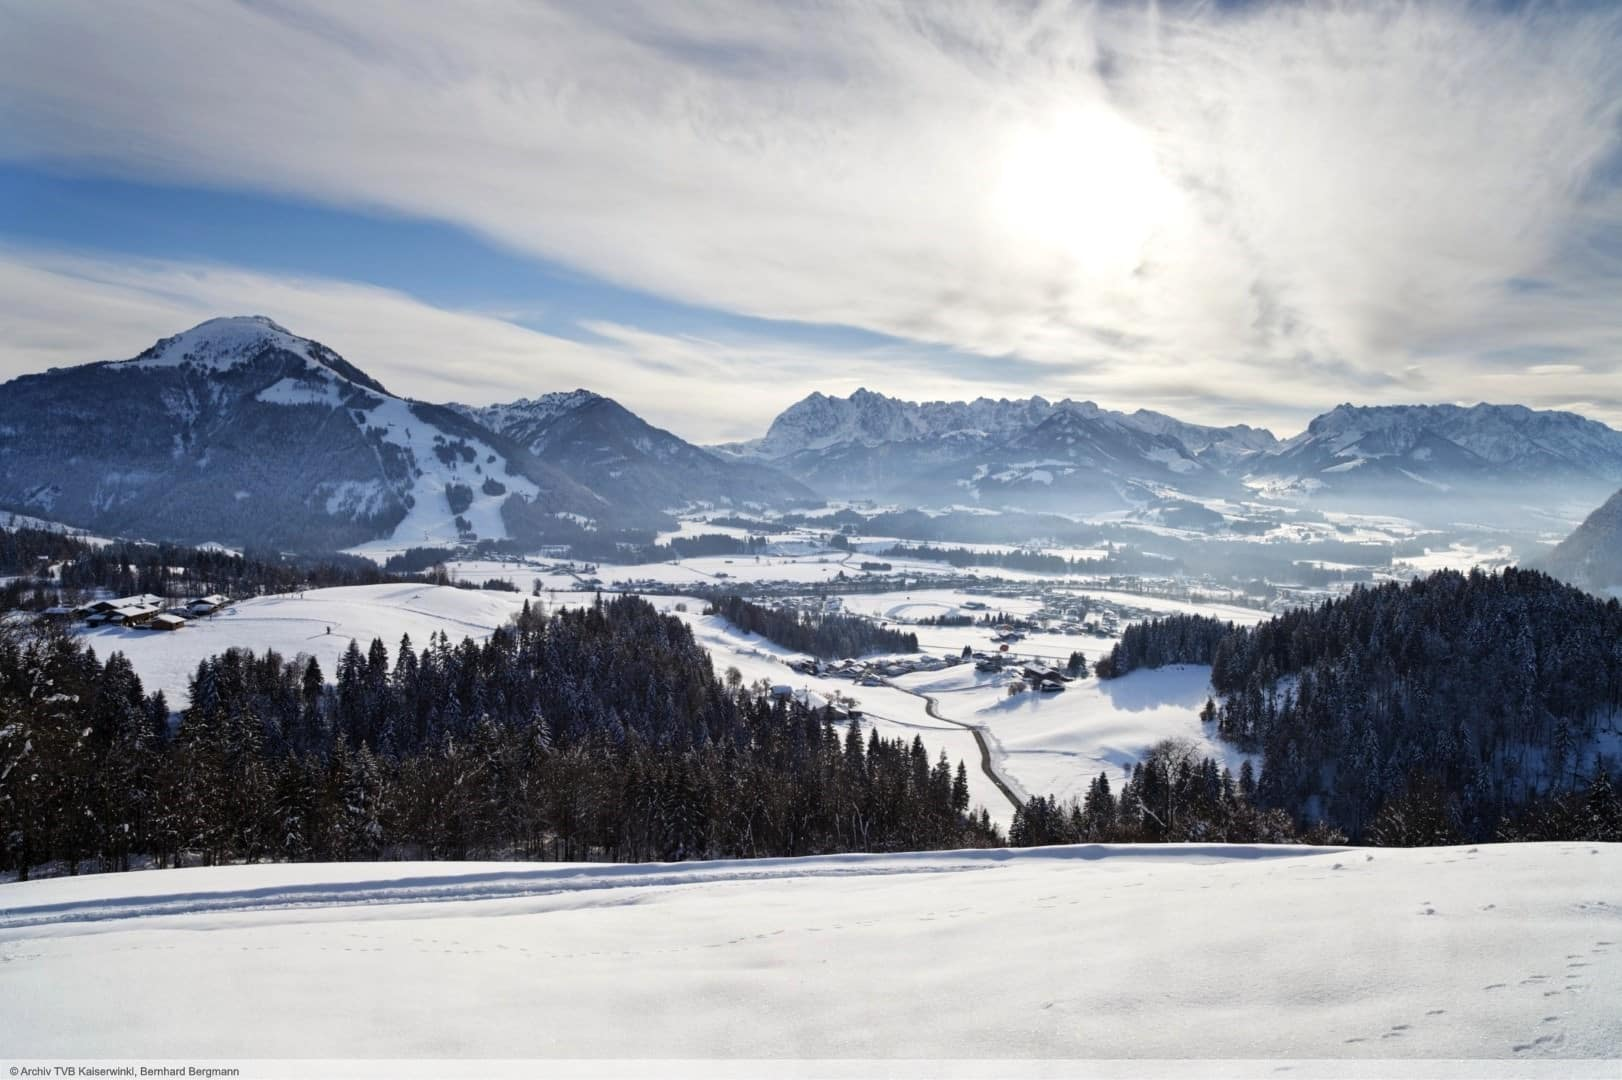 wintersport en aanbiedingen in Walchsee